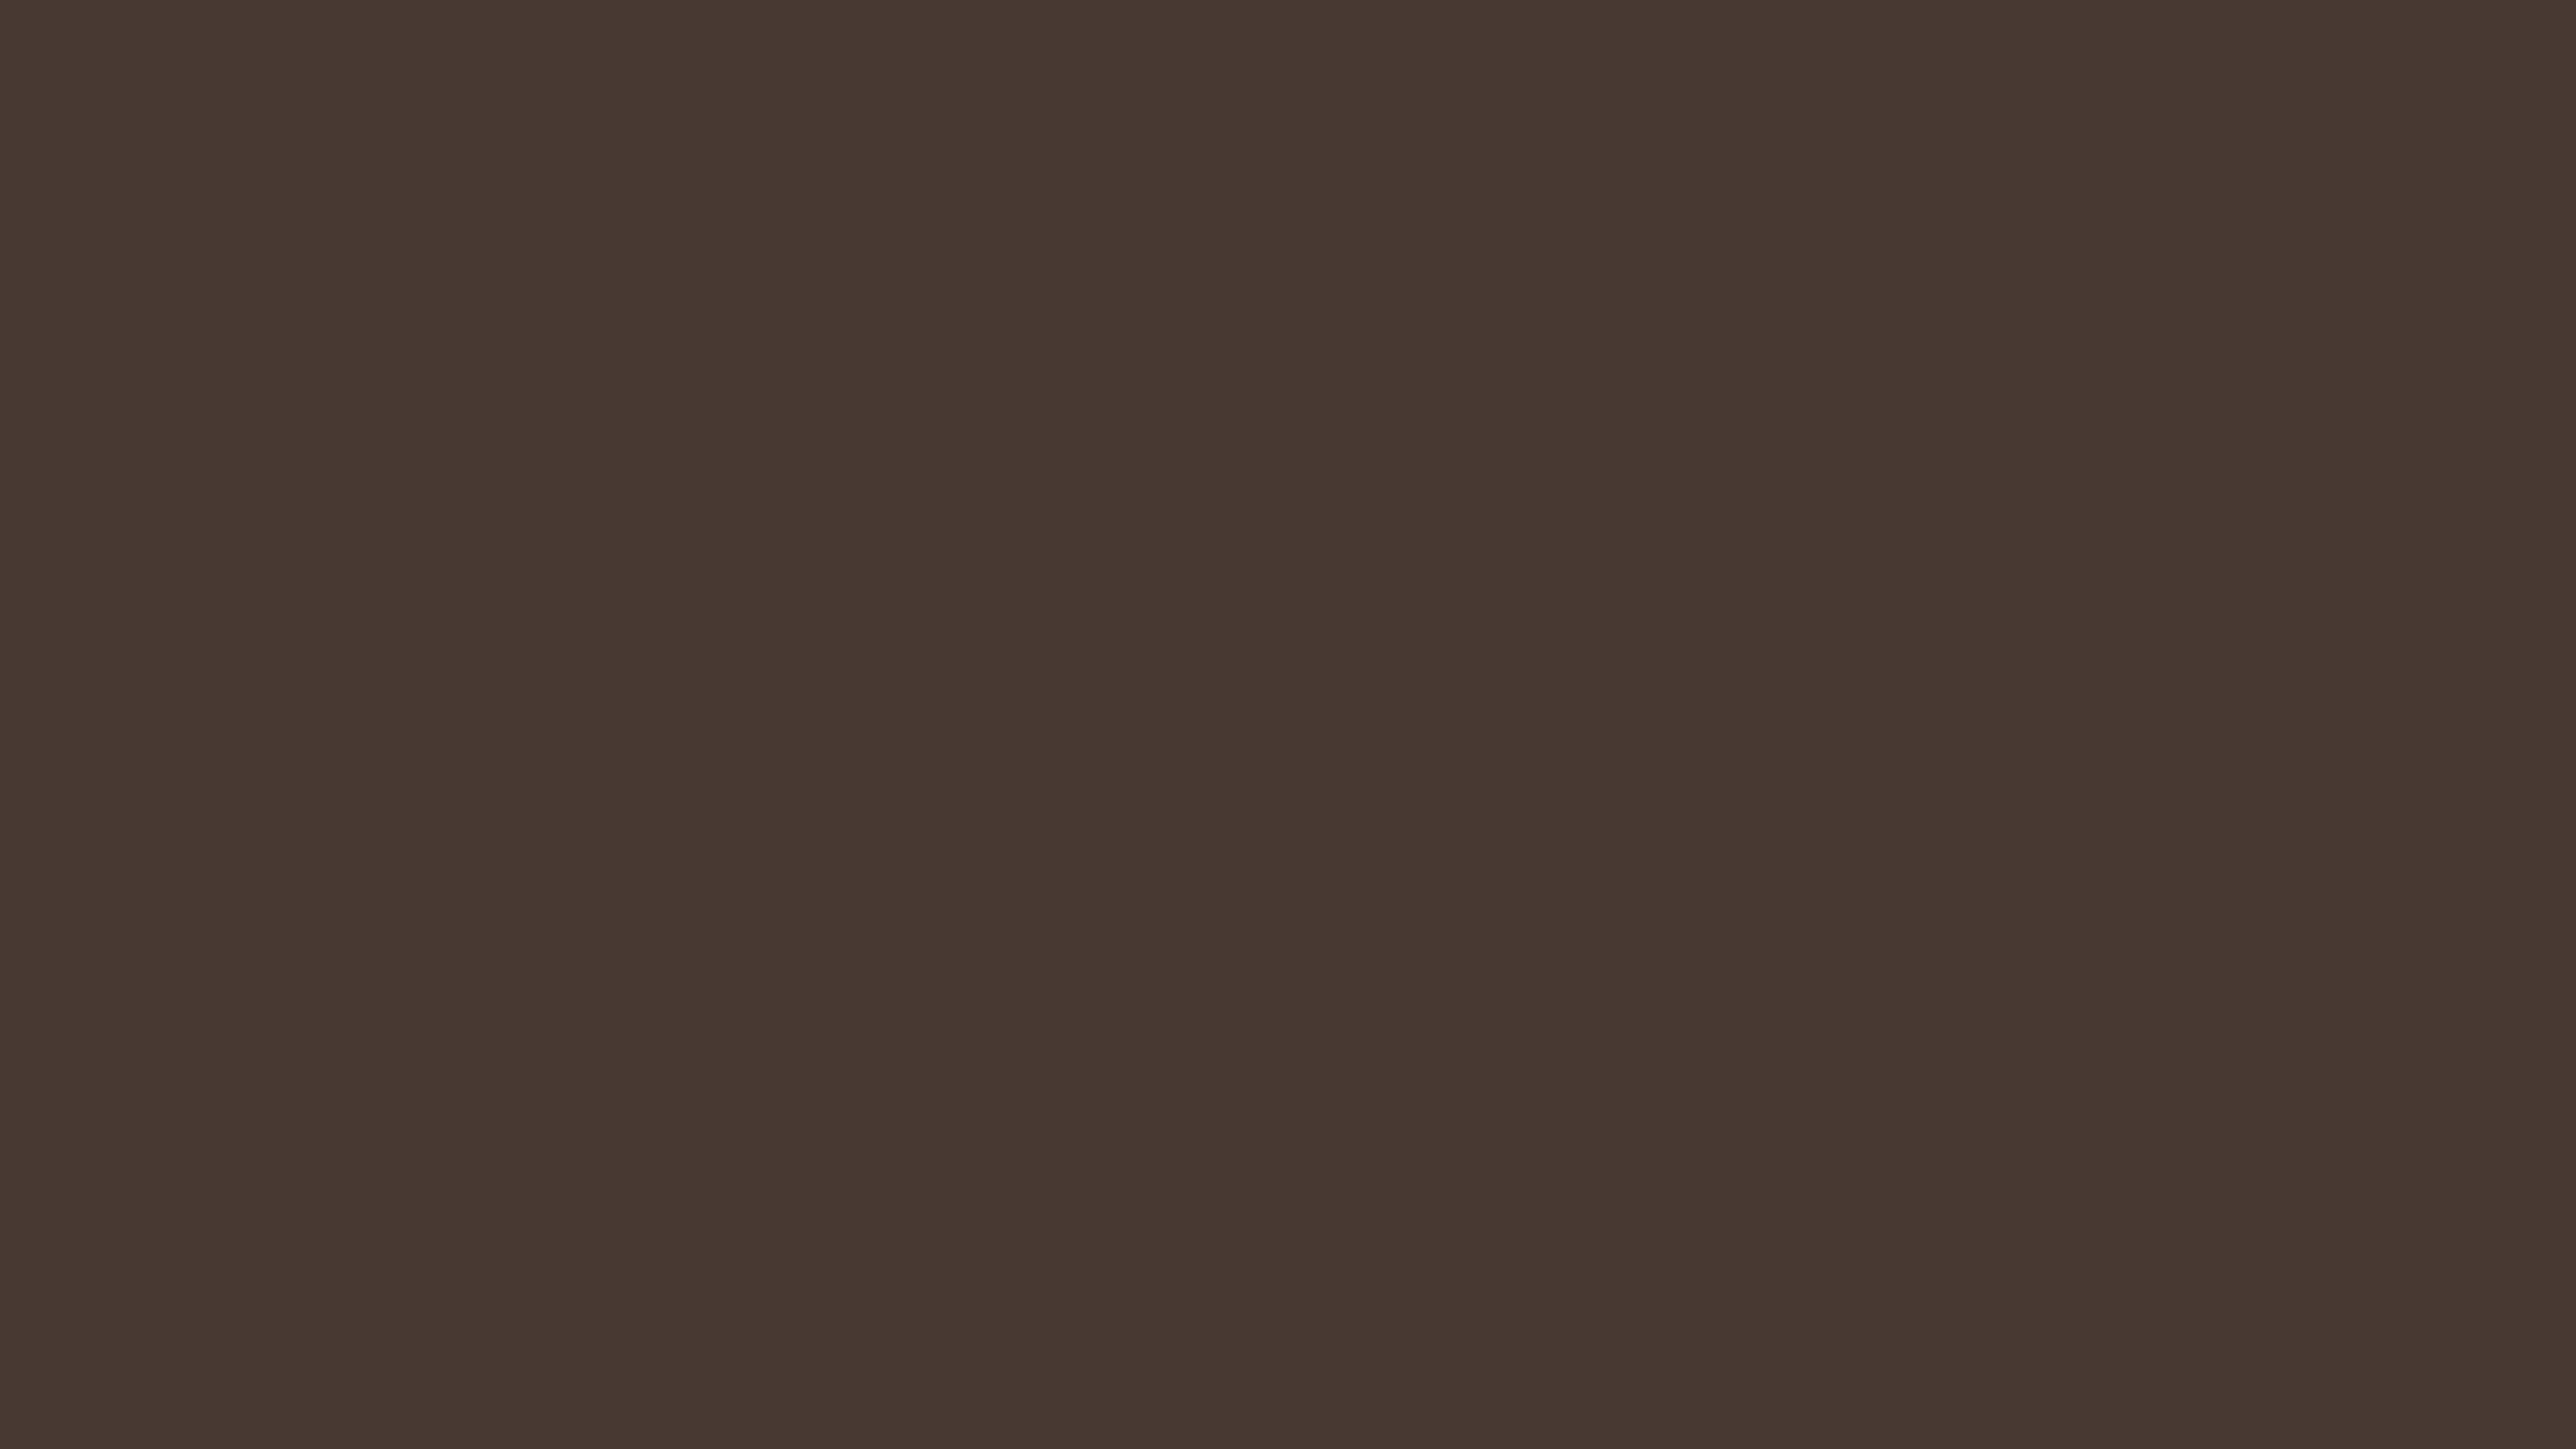 5120x2880 Taupe Solid Color Background